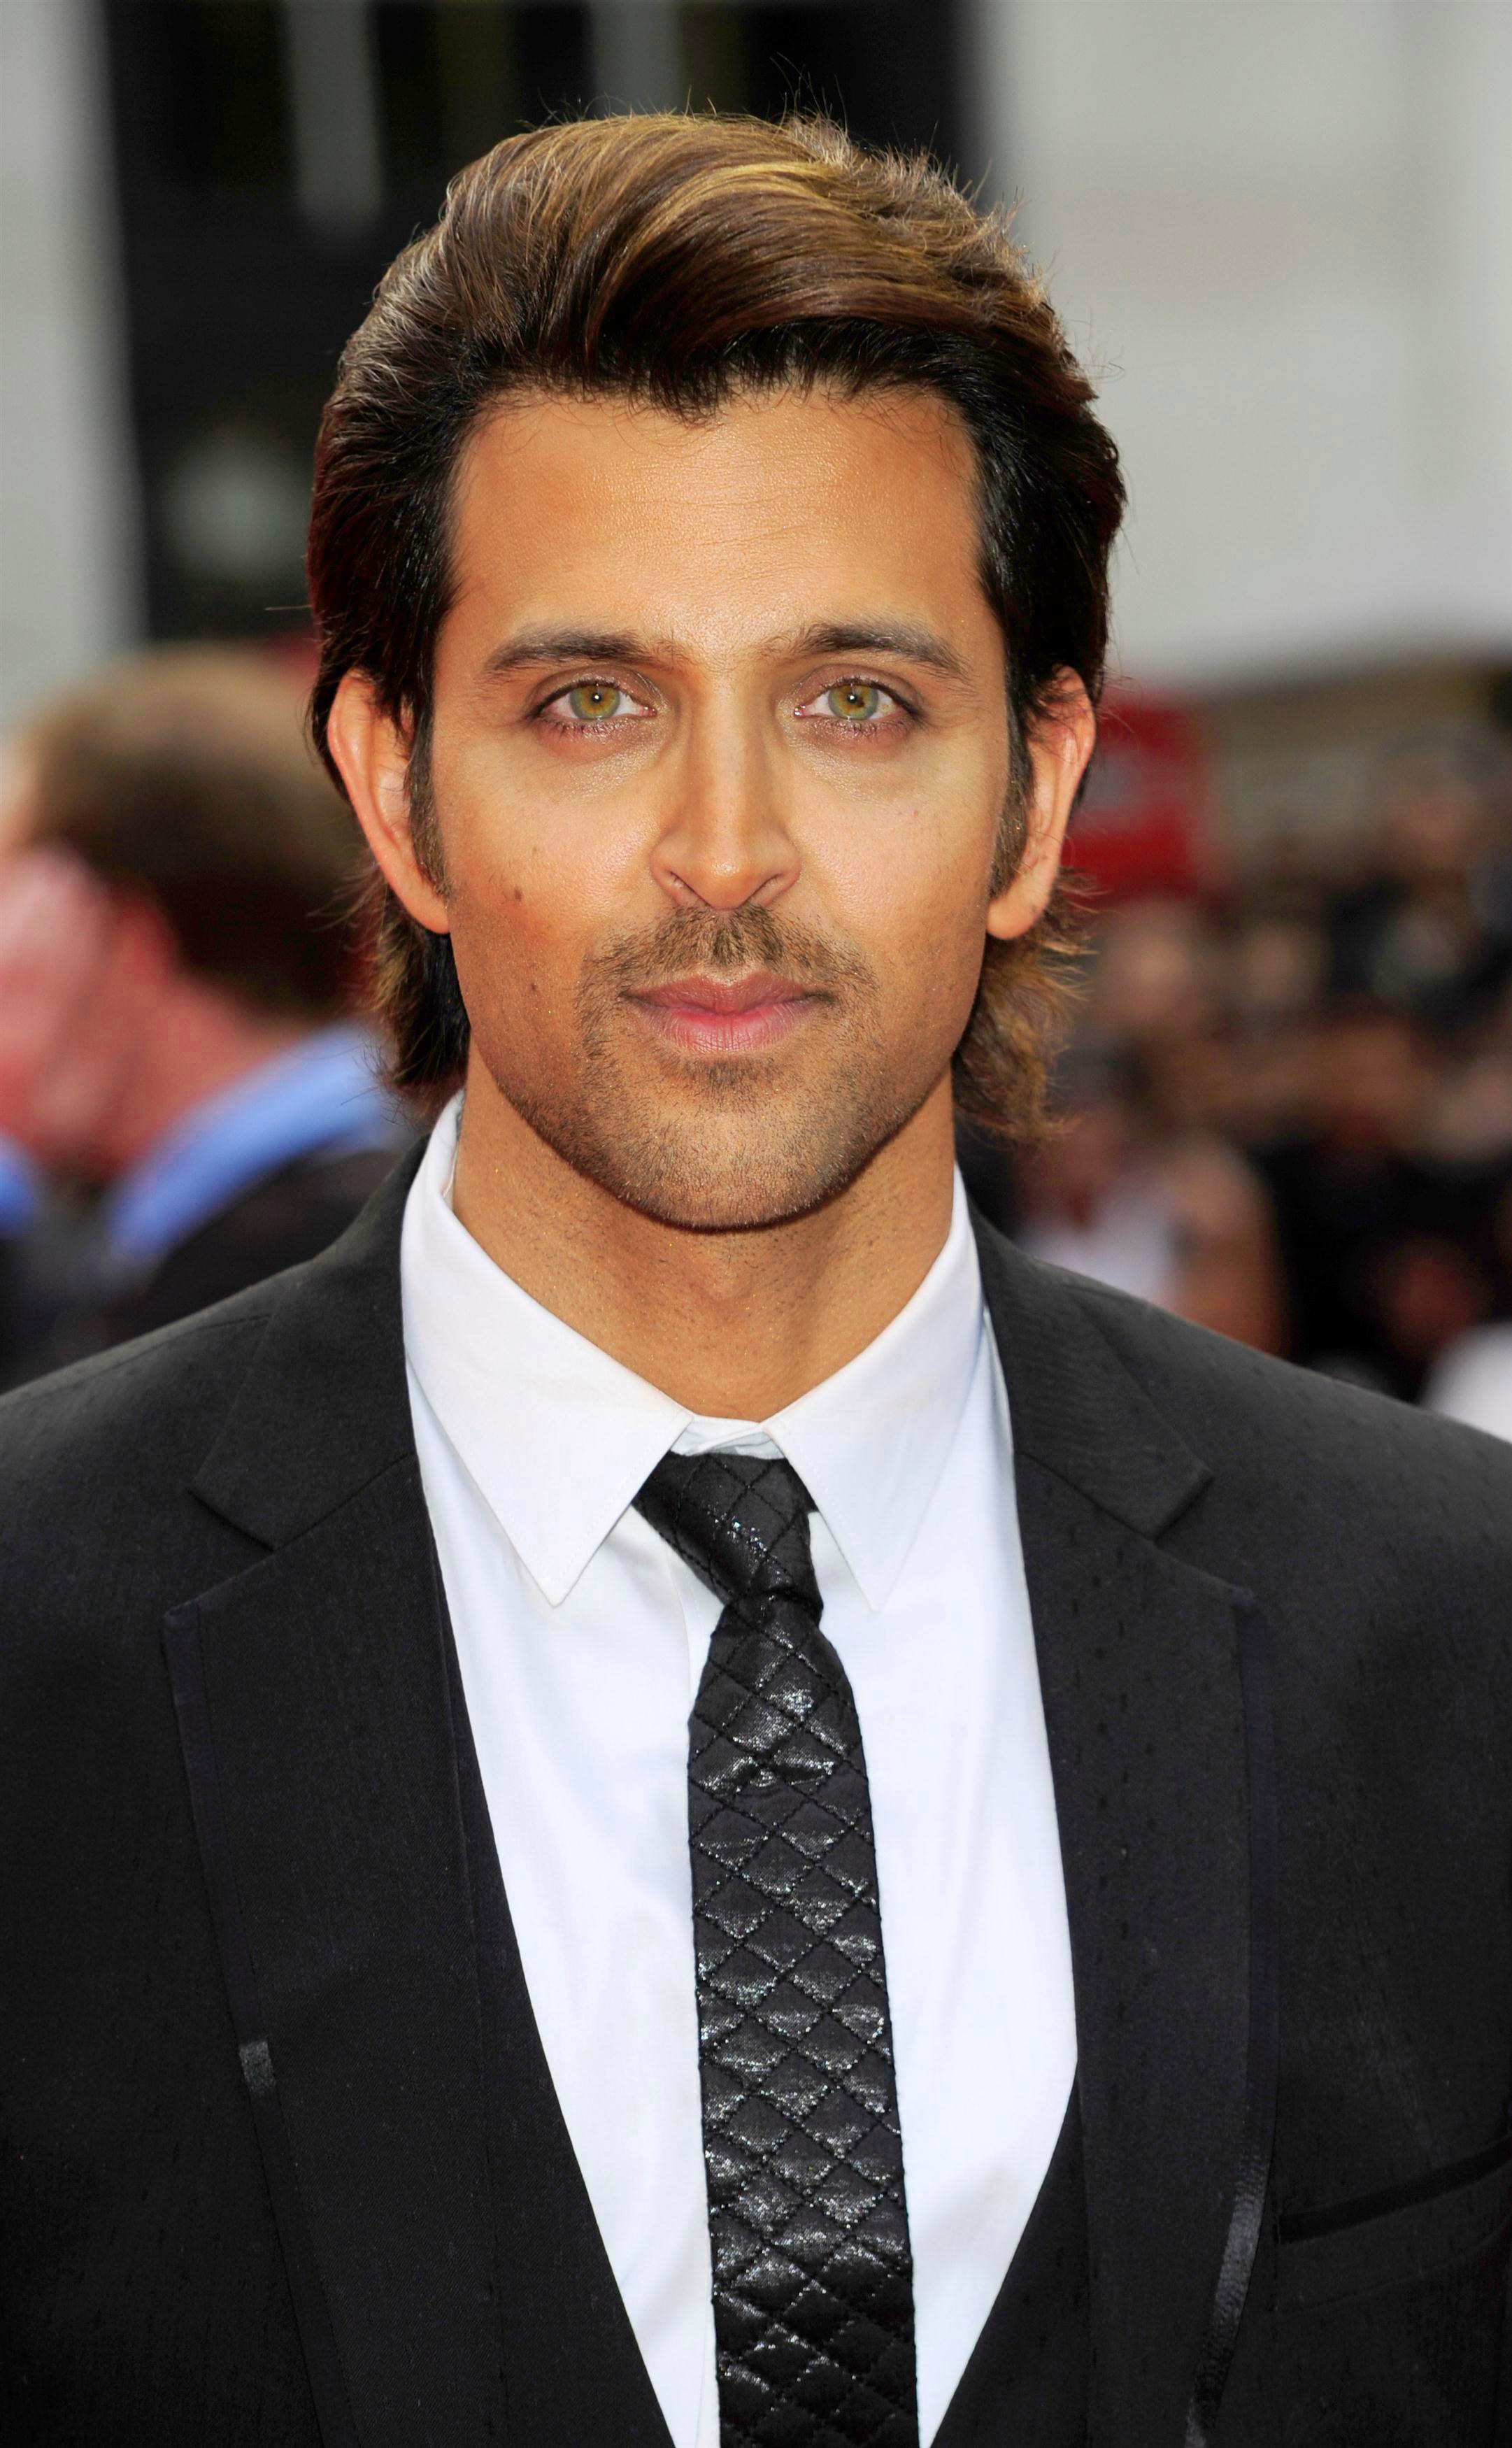 HRITHIK ROSHAN PHOTO WALLPAPER FOR WHATSAPP